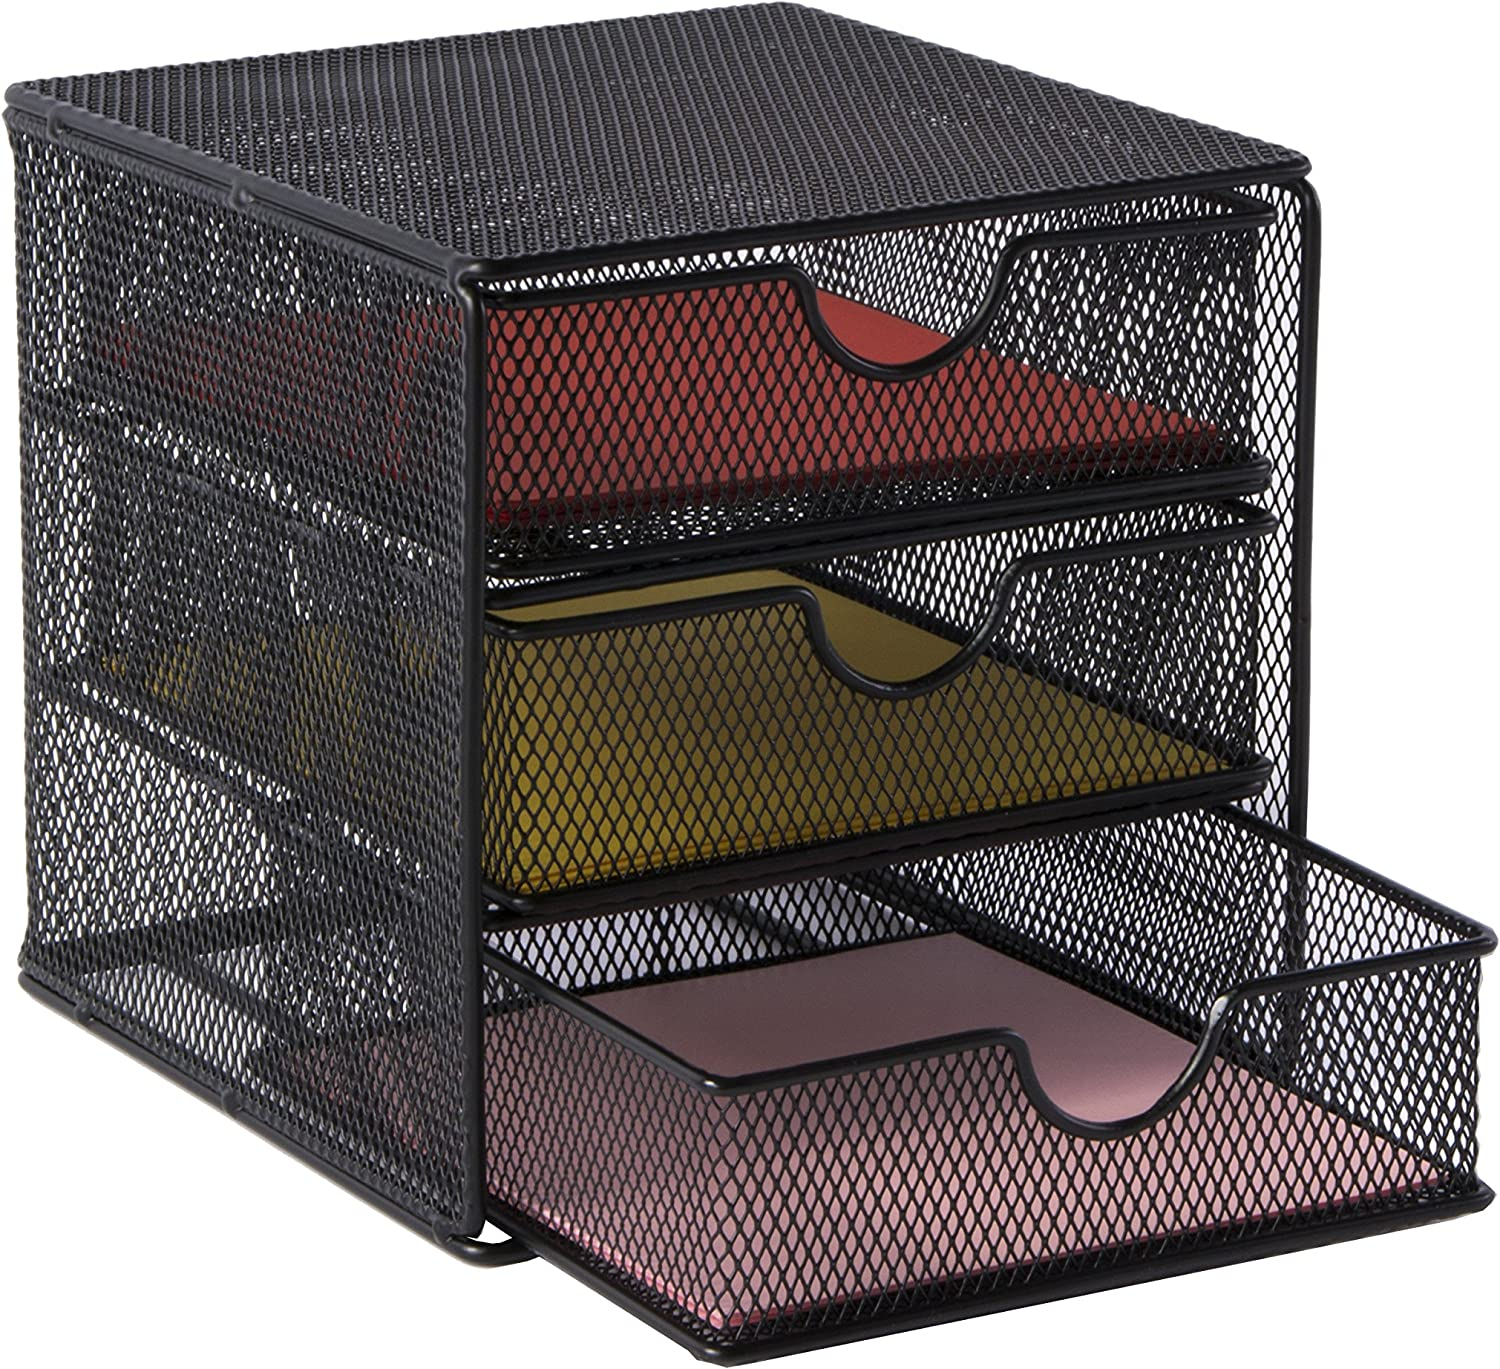 OSCO SM3DS-SLV Small Wire Mesh 3 Drawer Chest - Silver Black